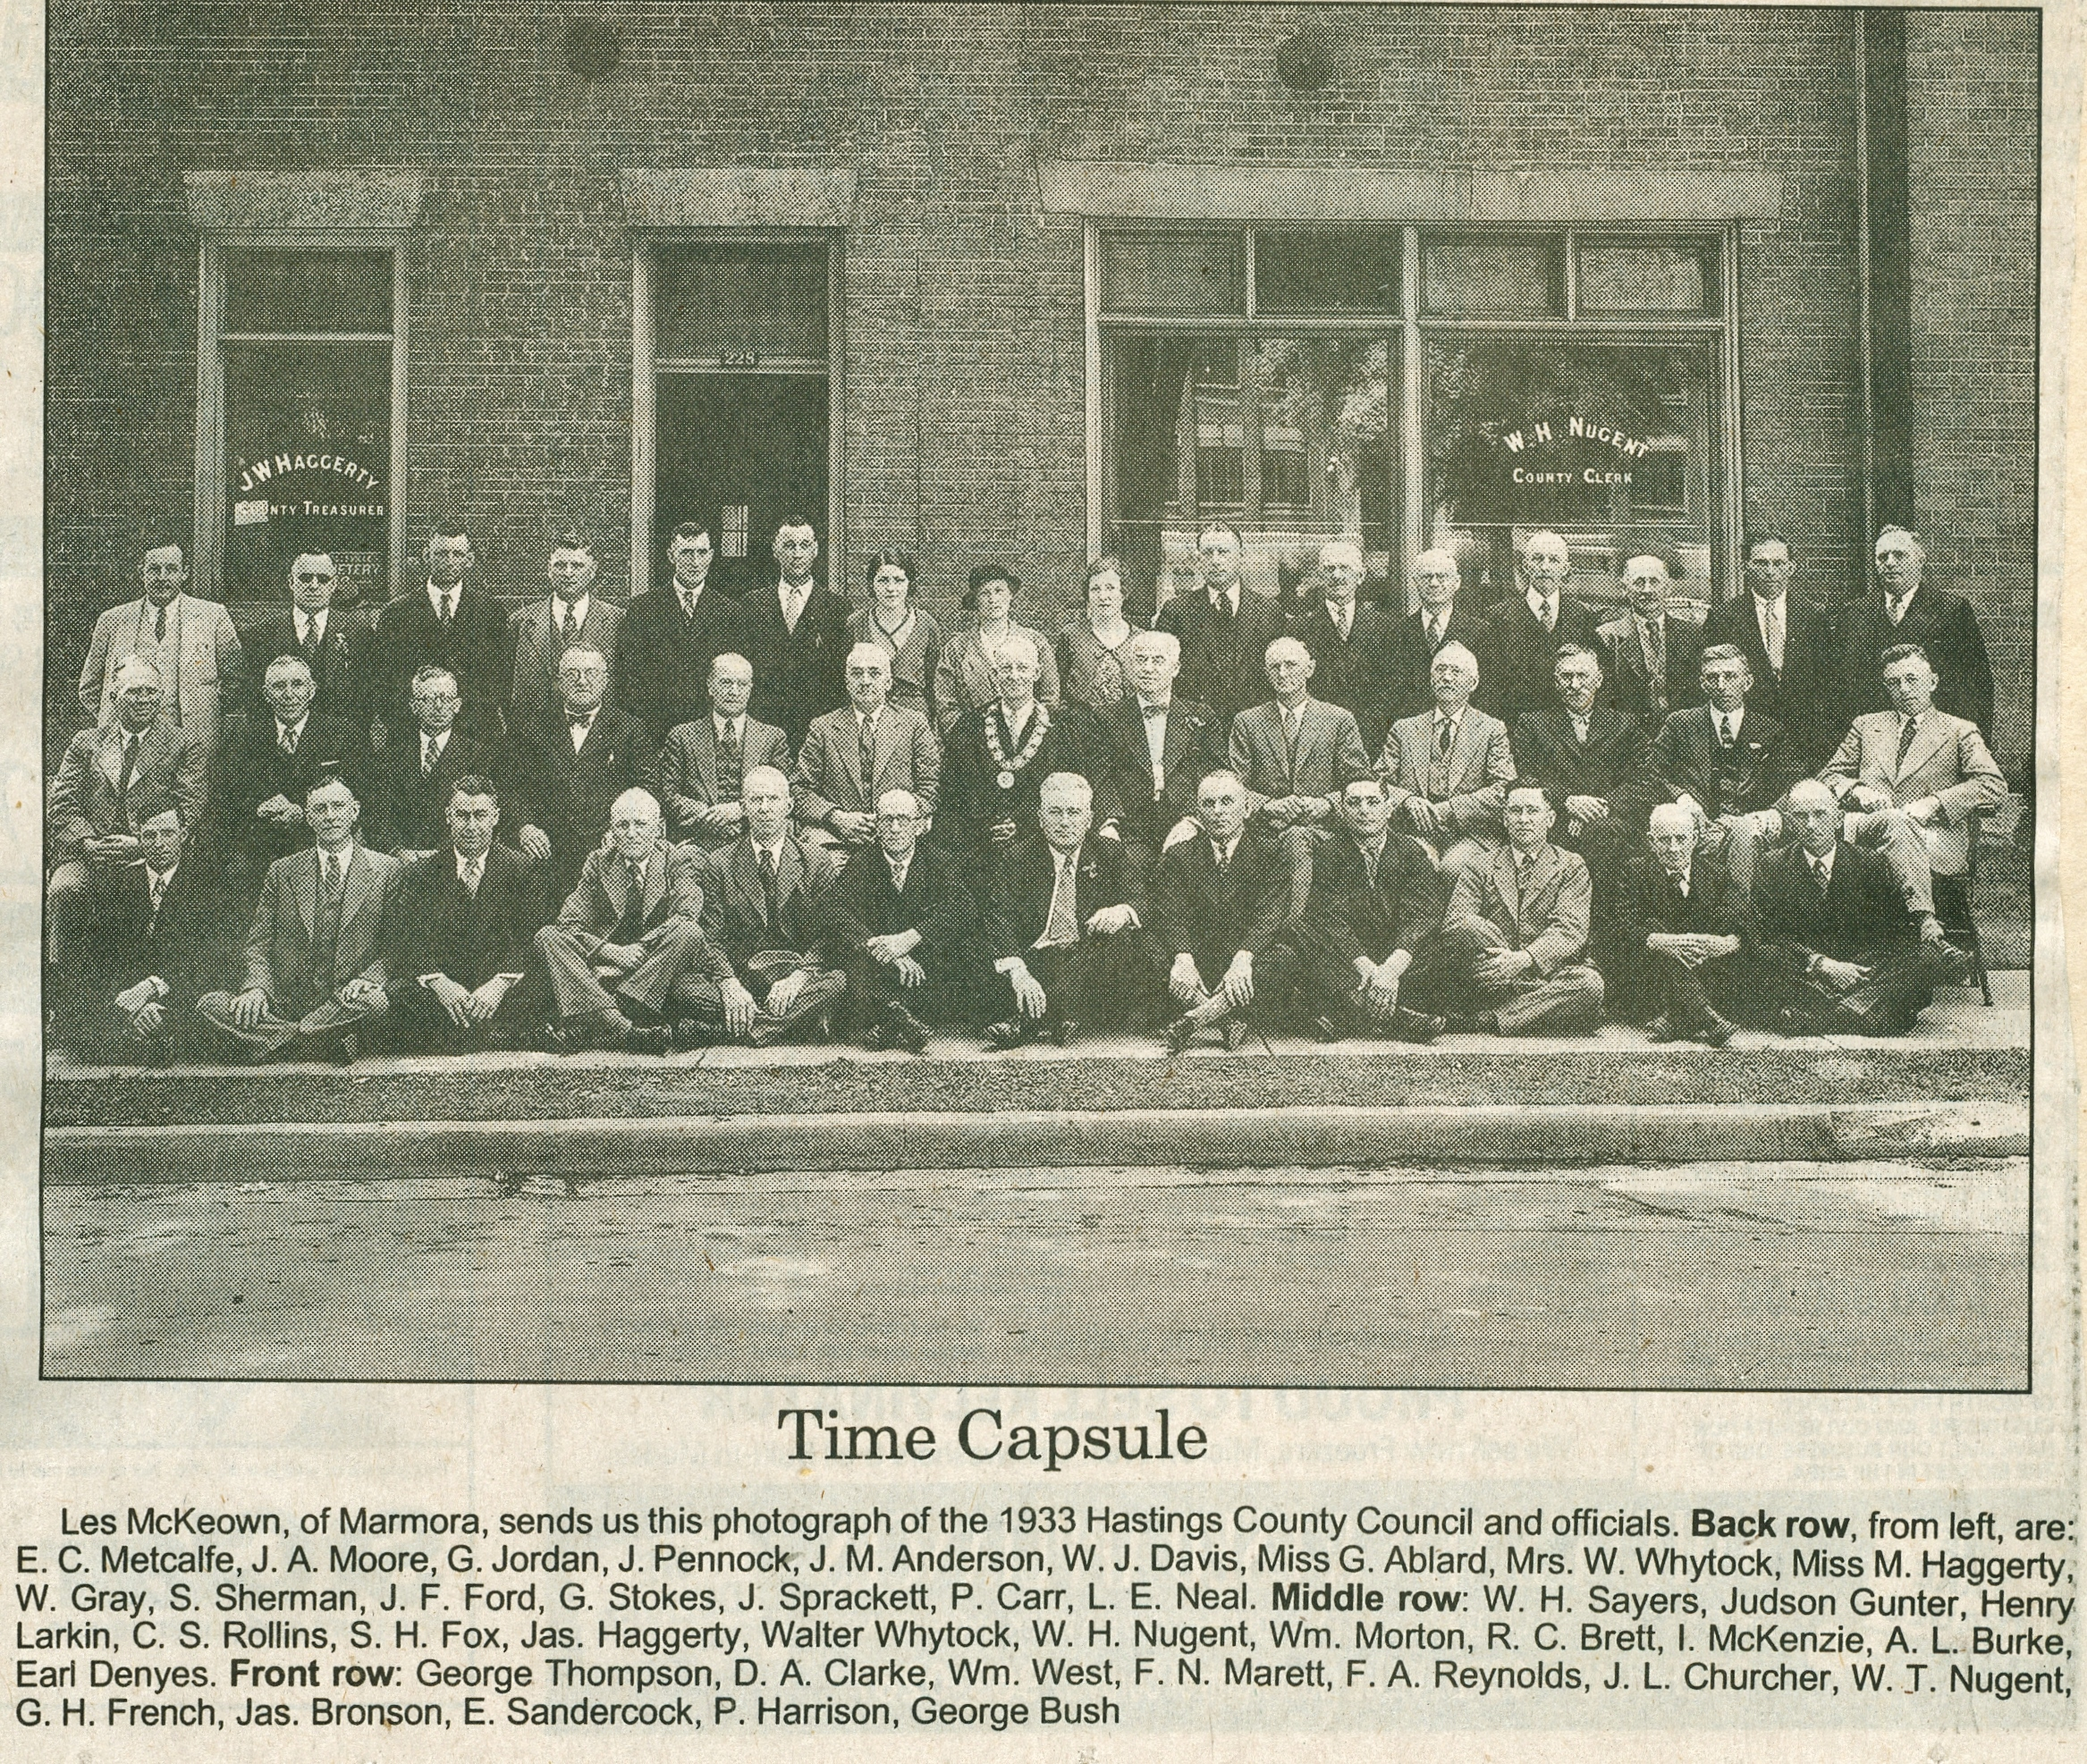 1933 Hastings County Council